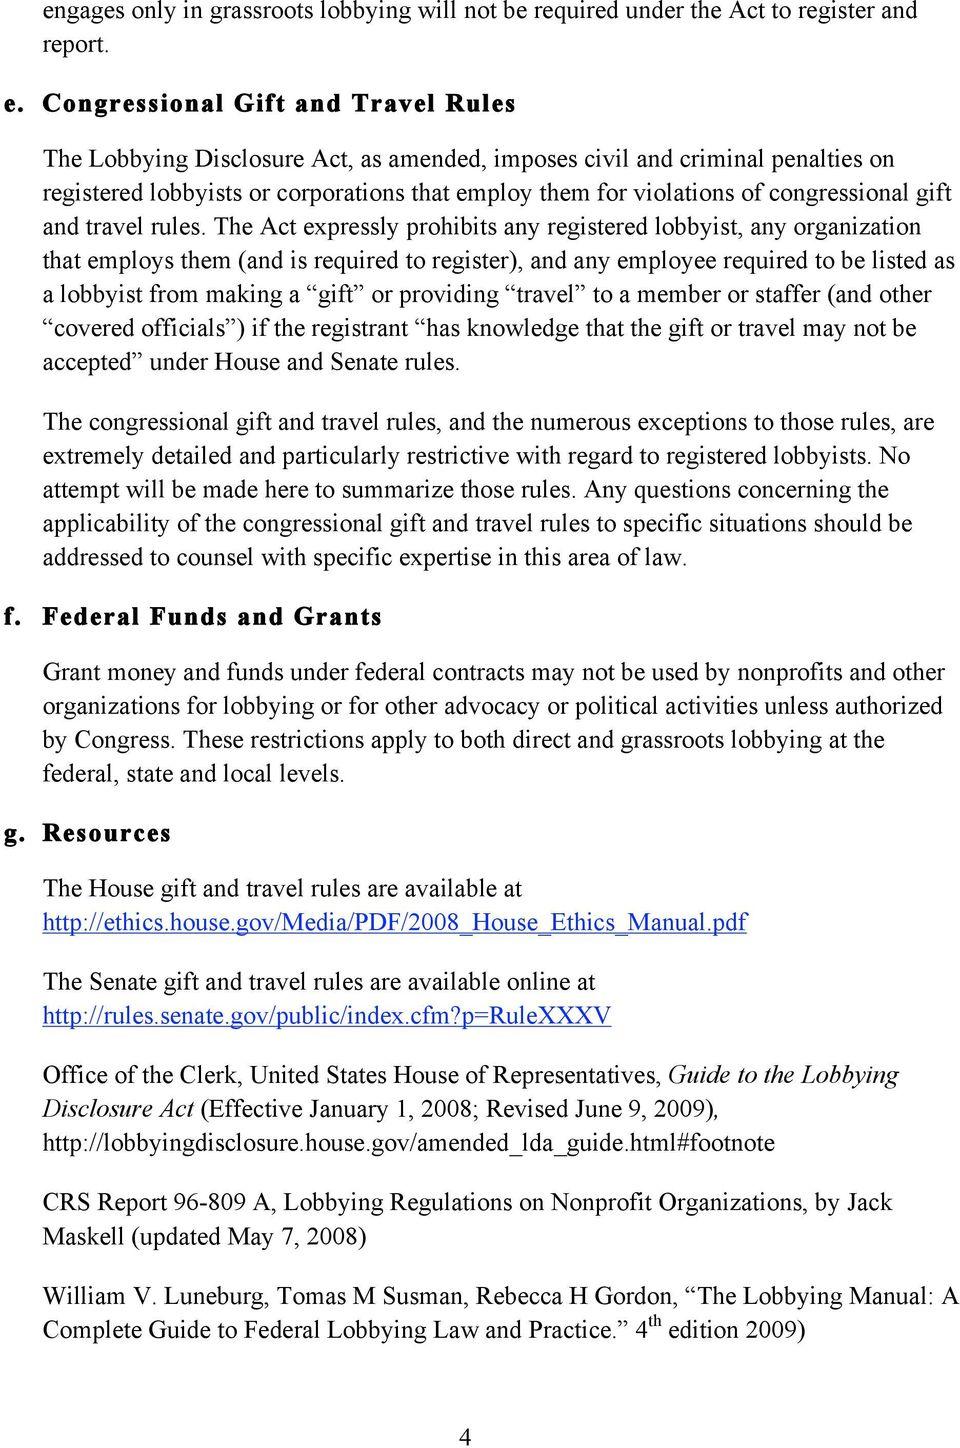 congressional gift and travel rules.